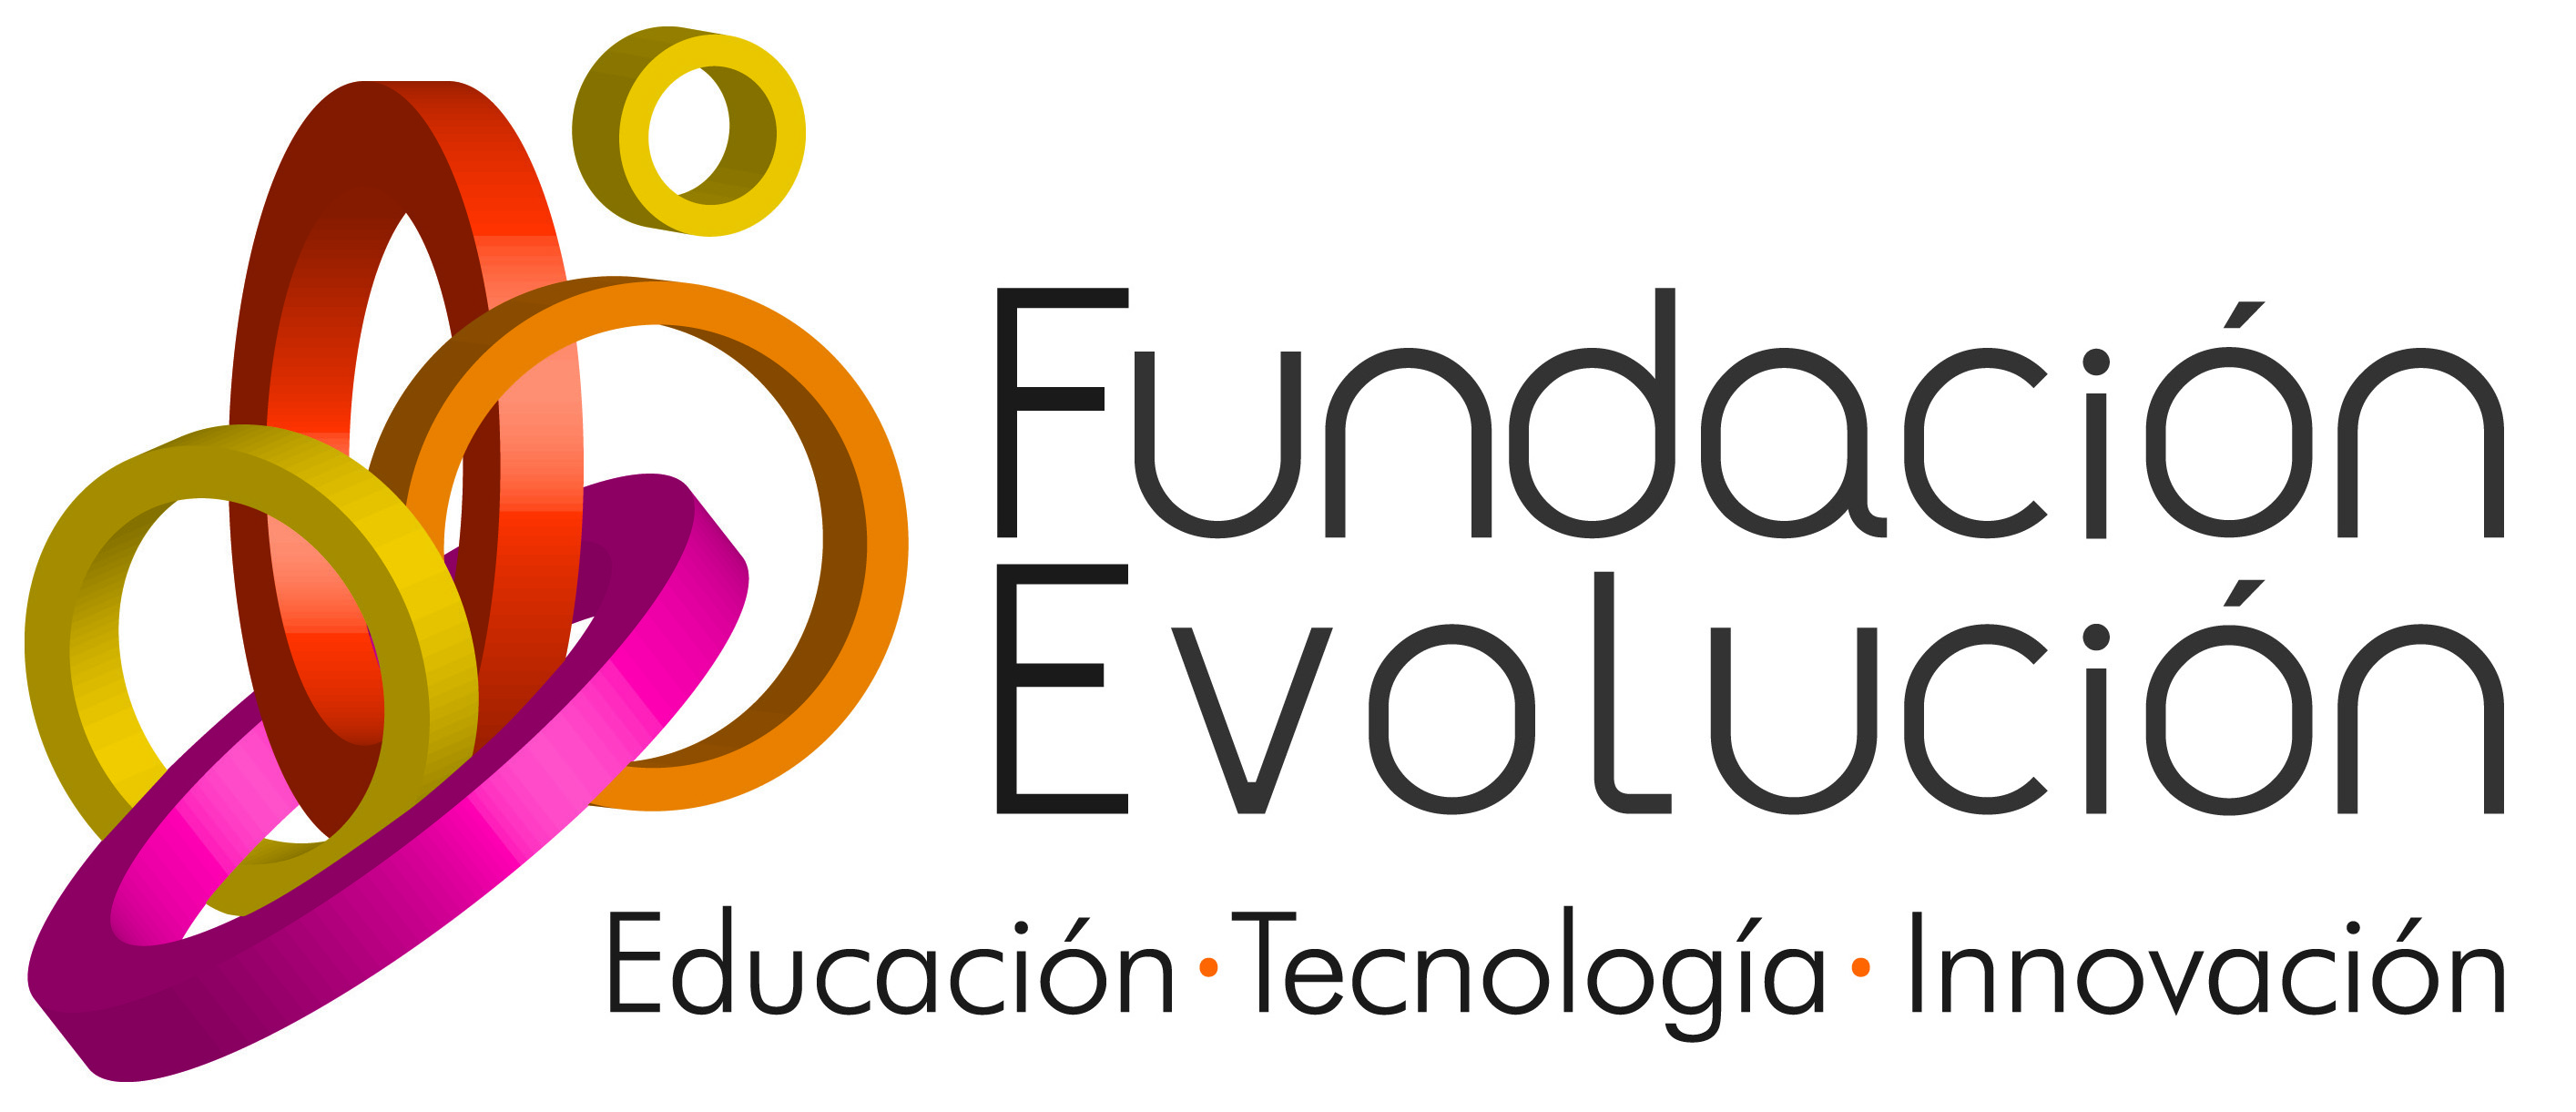 https://upload.wikimedia.org/wikipedia/commons/9/94/Logo_Fundaci%C3%B3n_Evoluci%C3%B3n.jpg